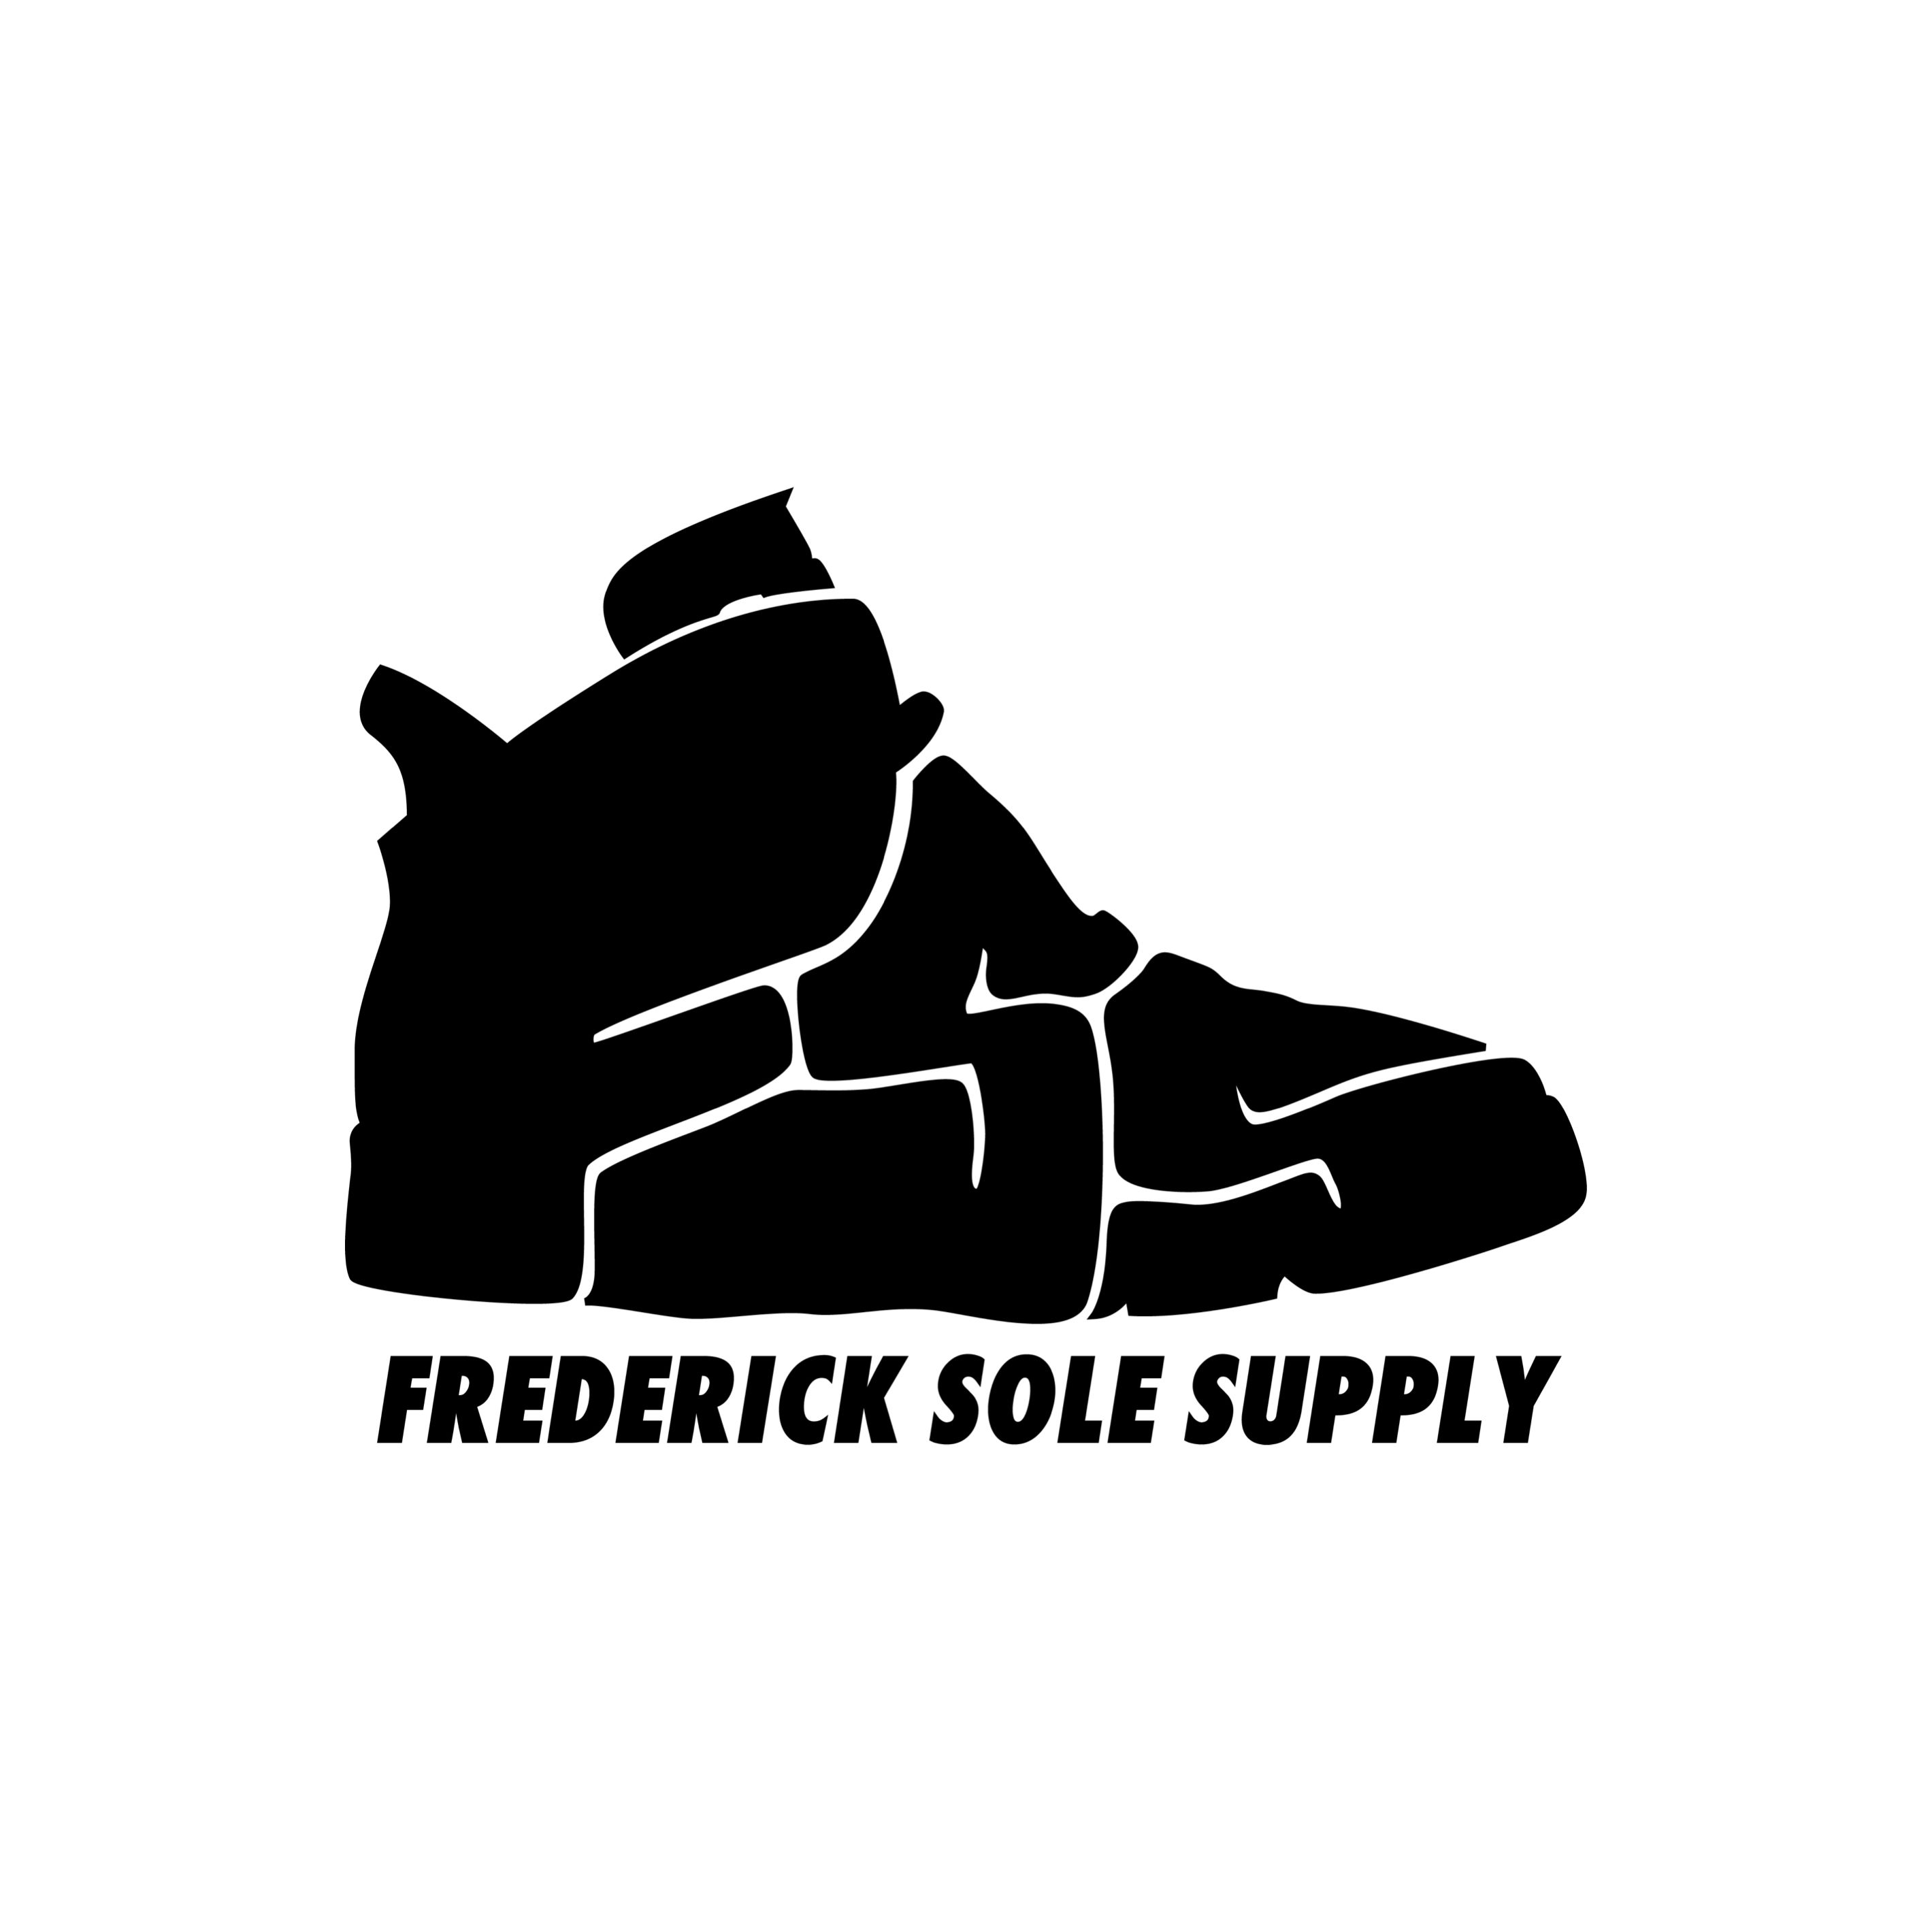 Logo created for the Frederick Sole Supply